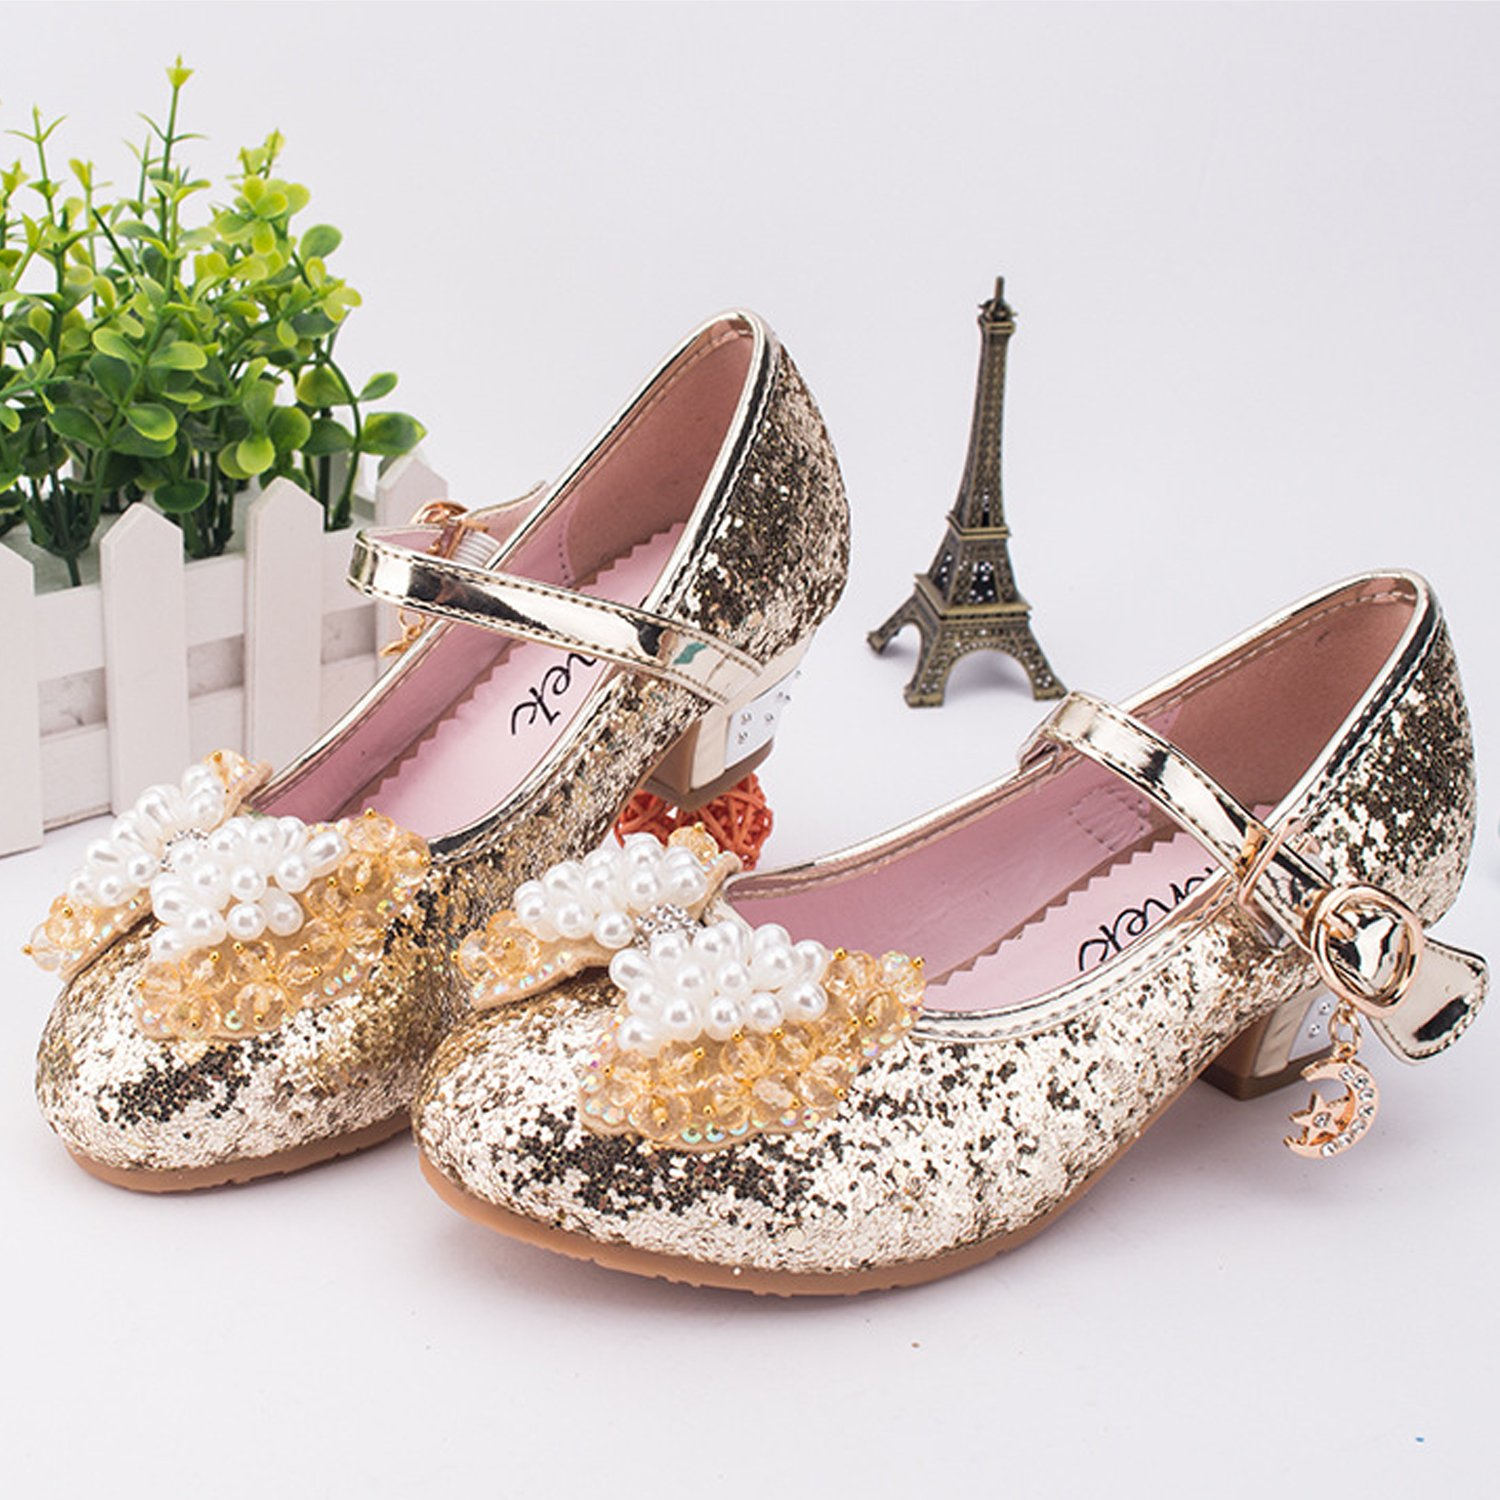 UBELLA Kids Girls Mary Jane Wedding Party Shoes Glitter Bridesmaids Low Heels Princess Dress Shoes